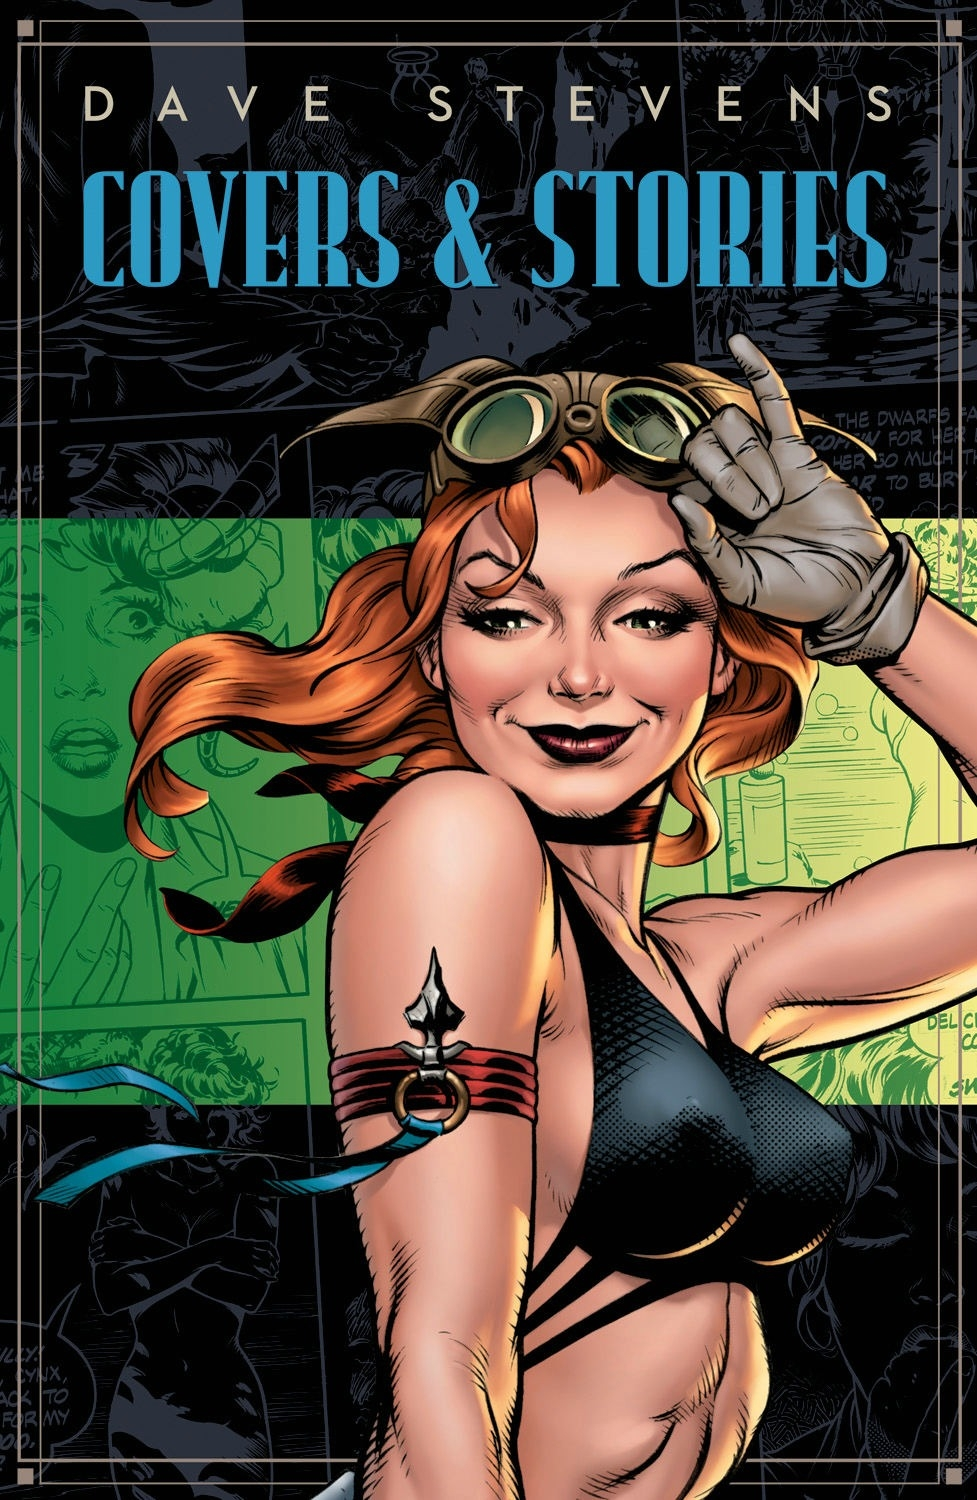 Dave Stevens' Stories & Covers by Dave Stevens, ISBN: 9781613772690